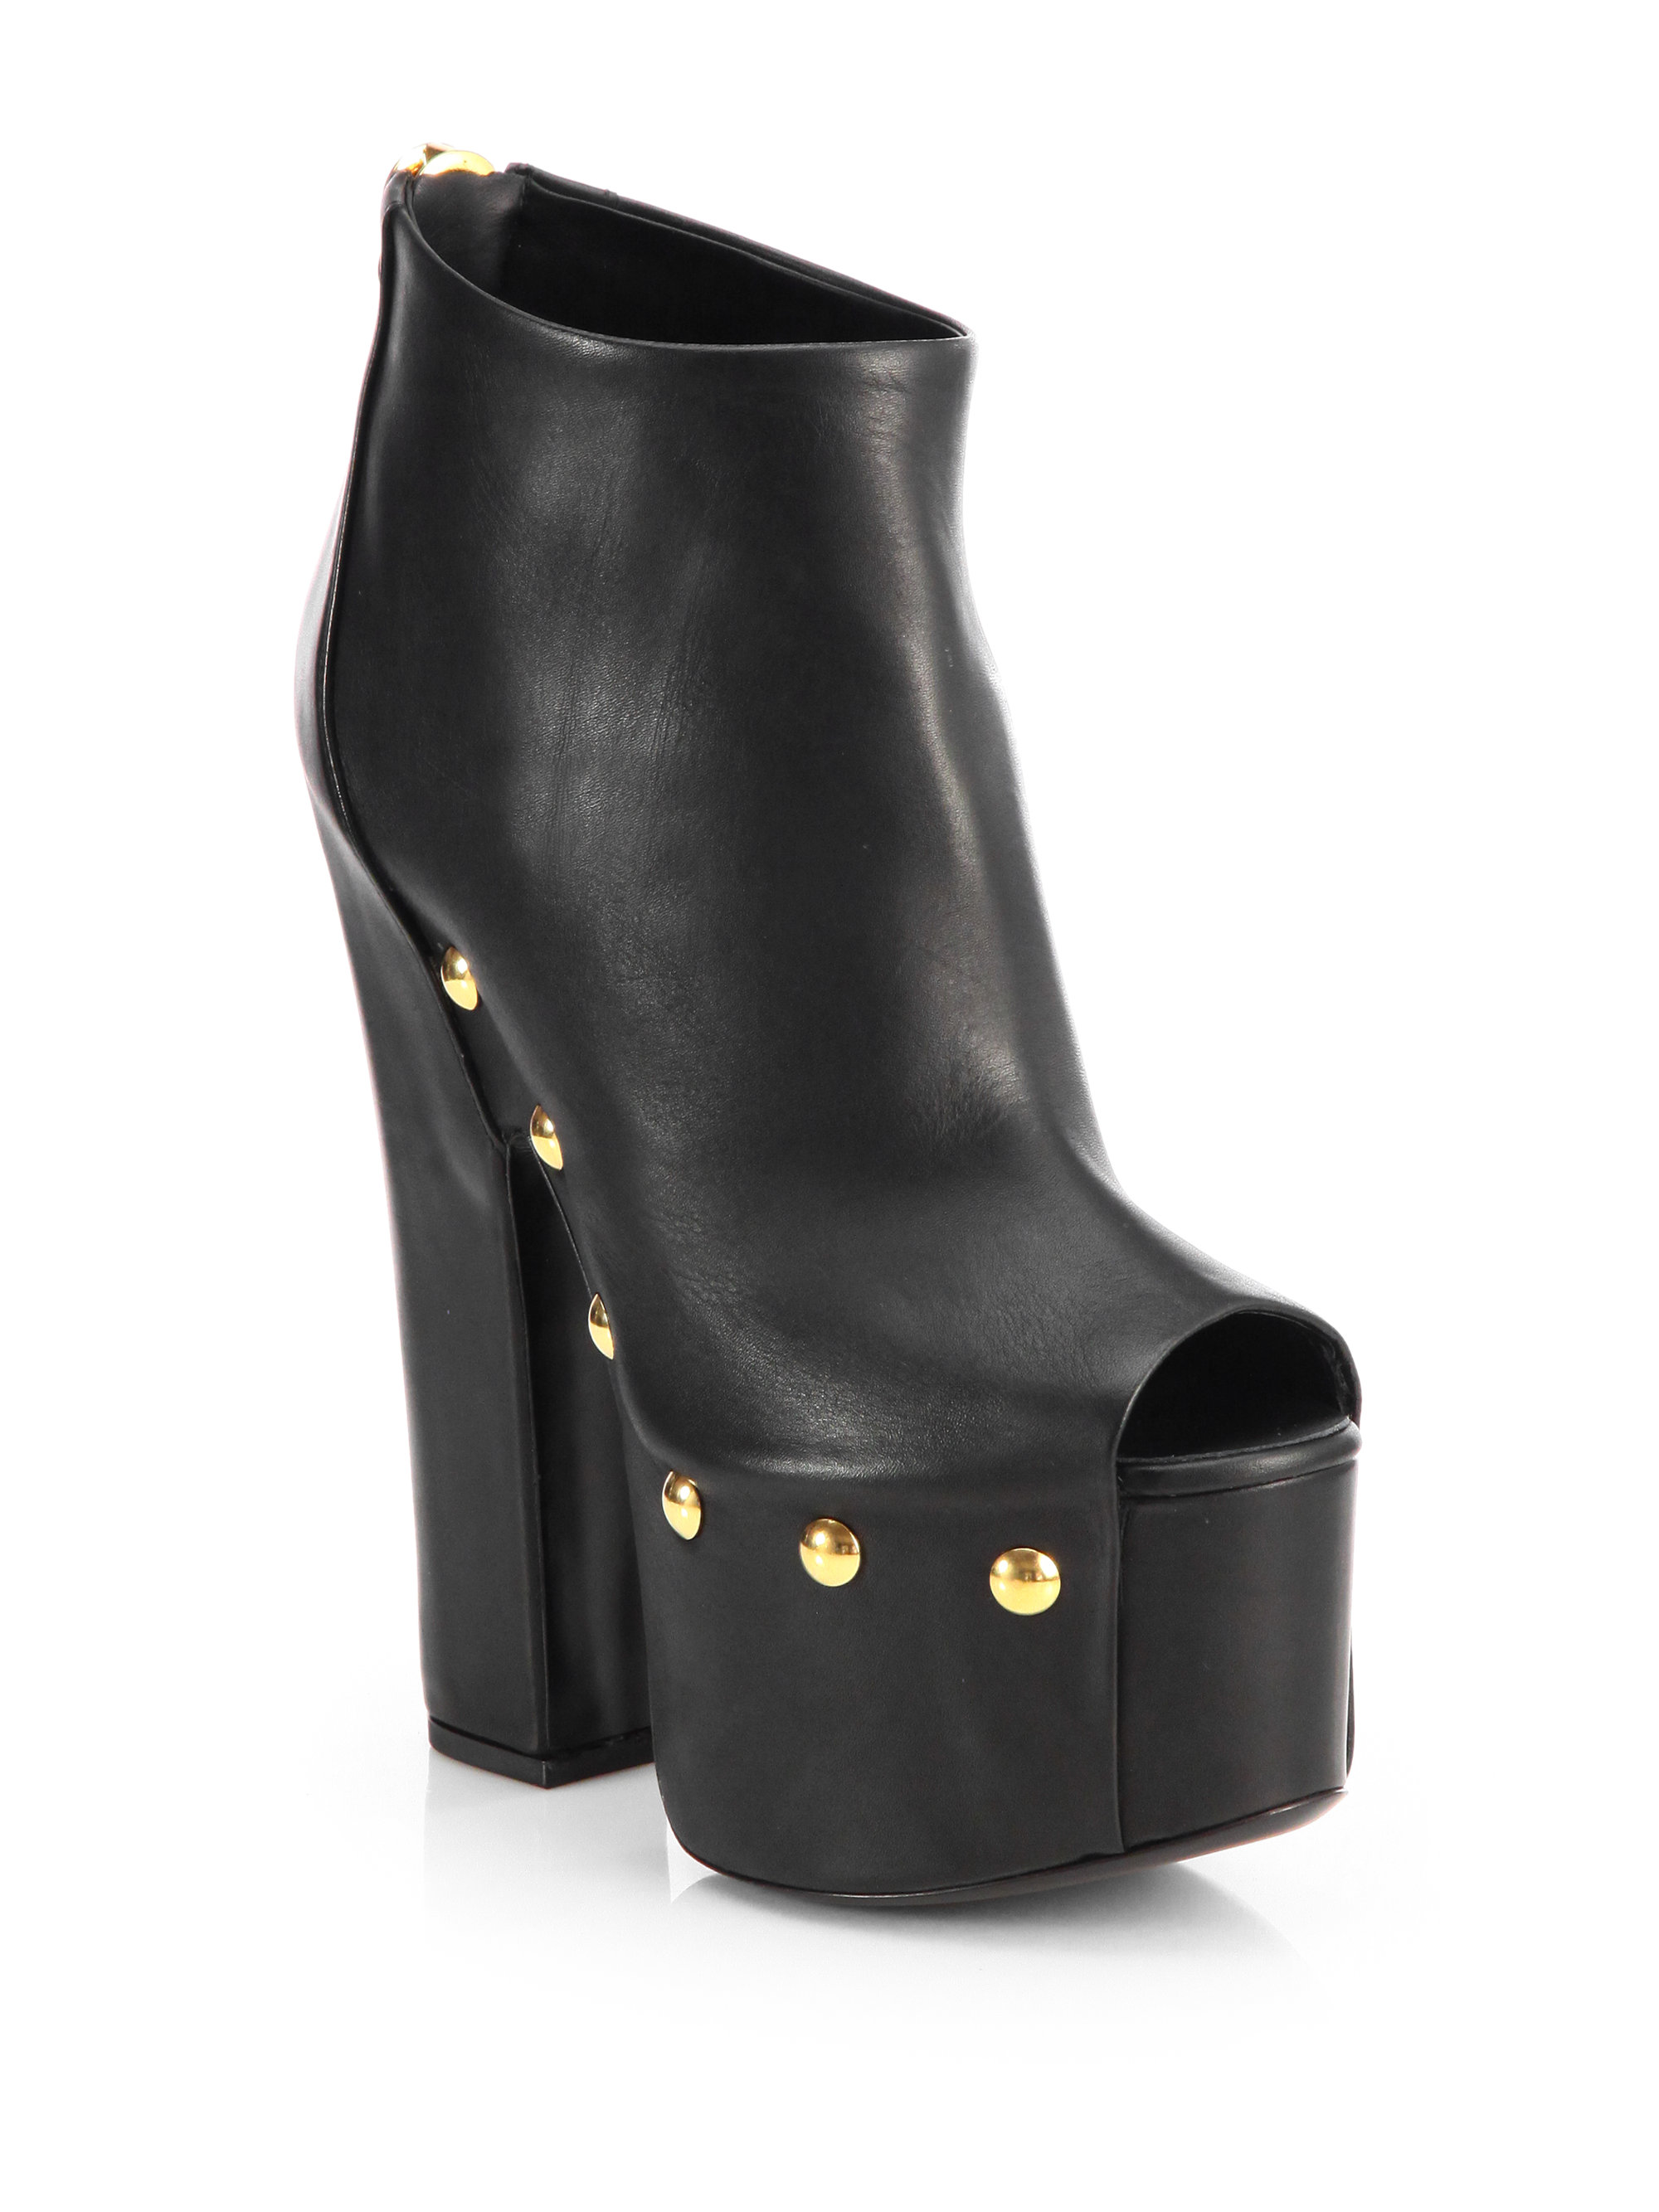 free shipping finishline cheap price free shipping Giuseppe Zanotti Leather Platform Booties original for sale manchester great sale online buy cheap visit gflW3wI7b